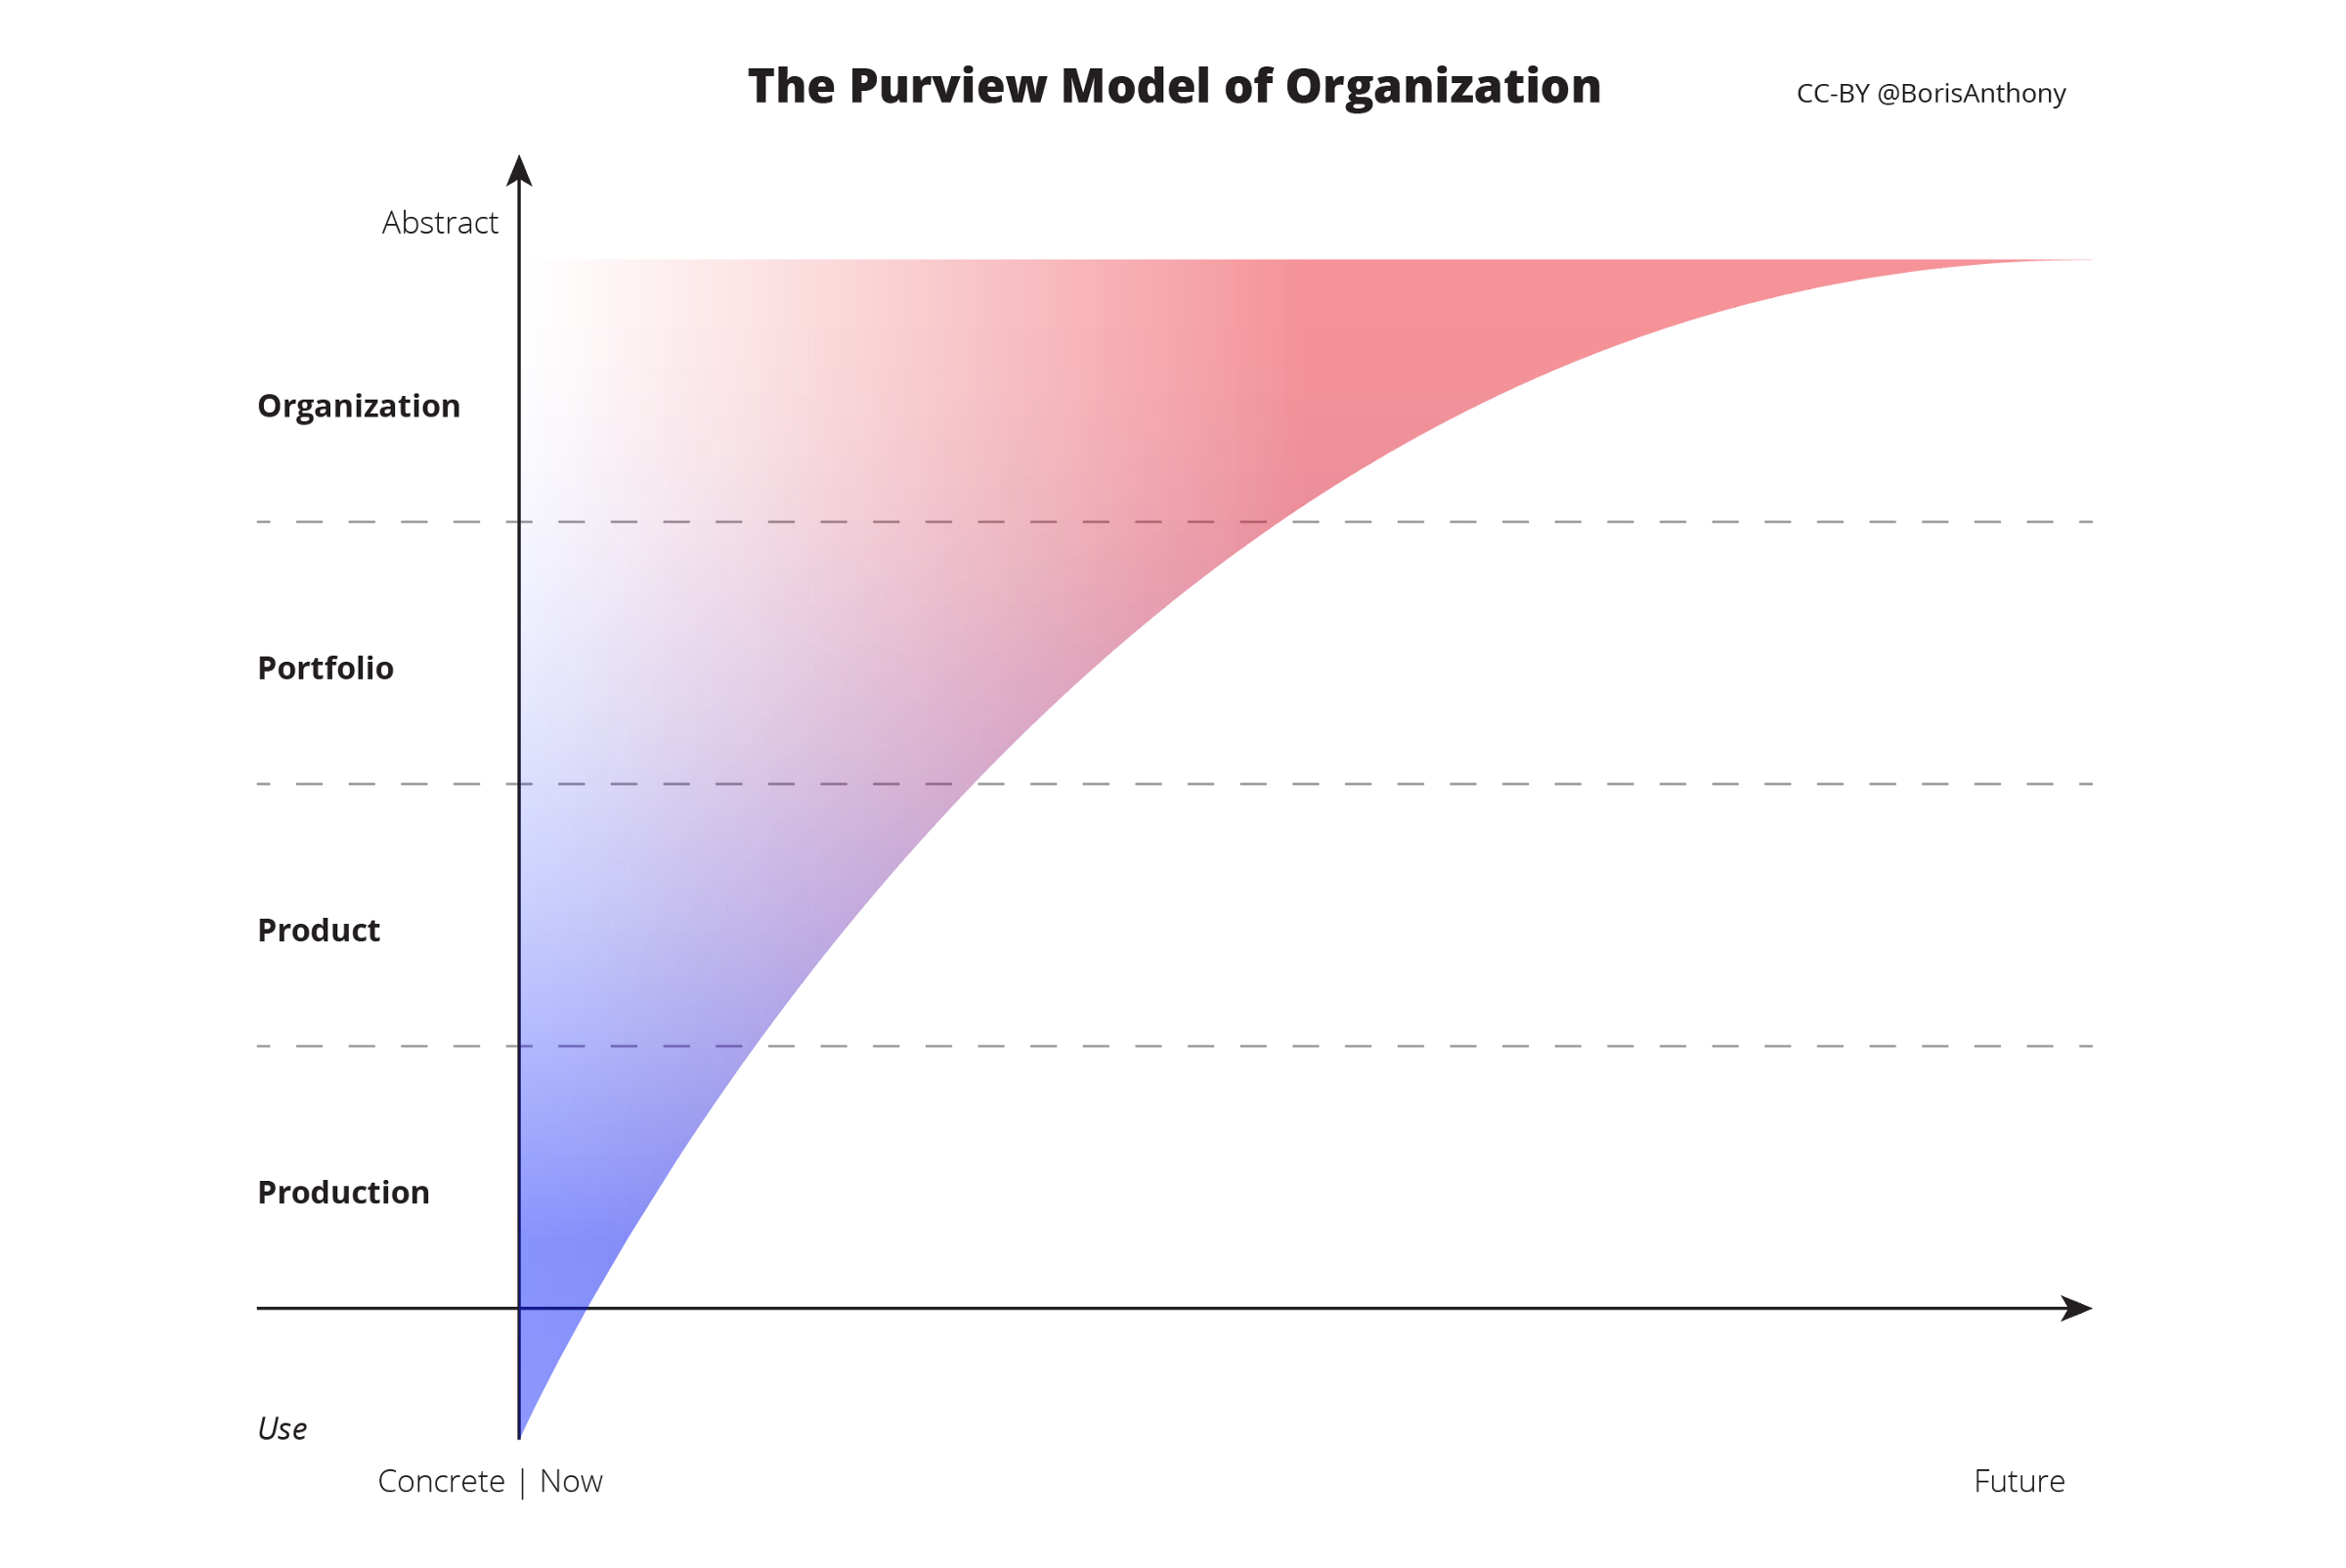 The Purview Model Levels: Production, Product, Portfolio, Organization.